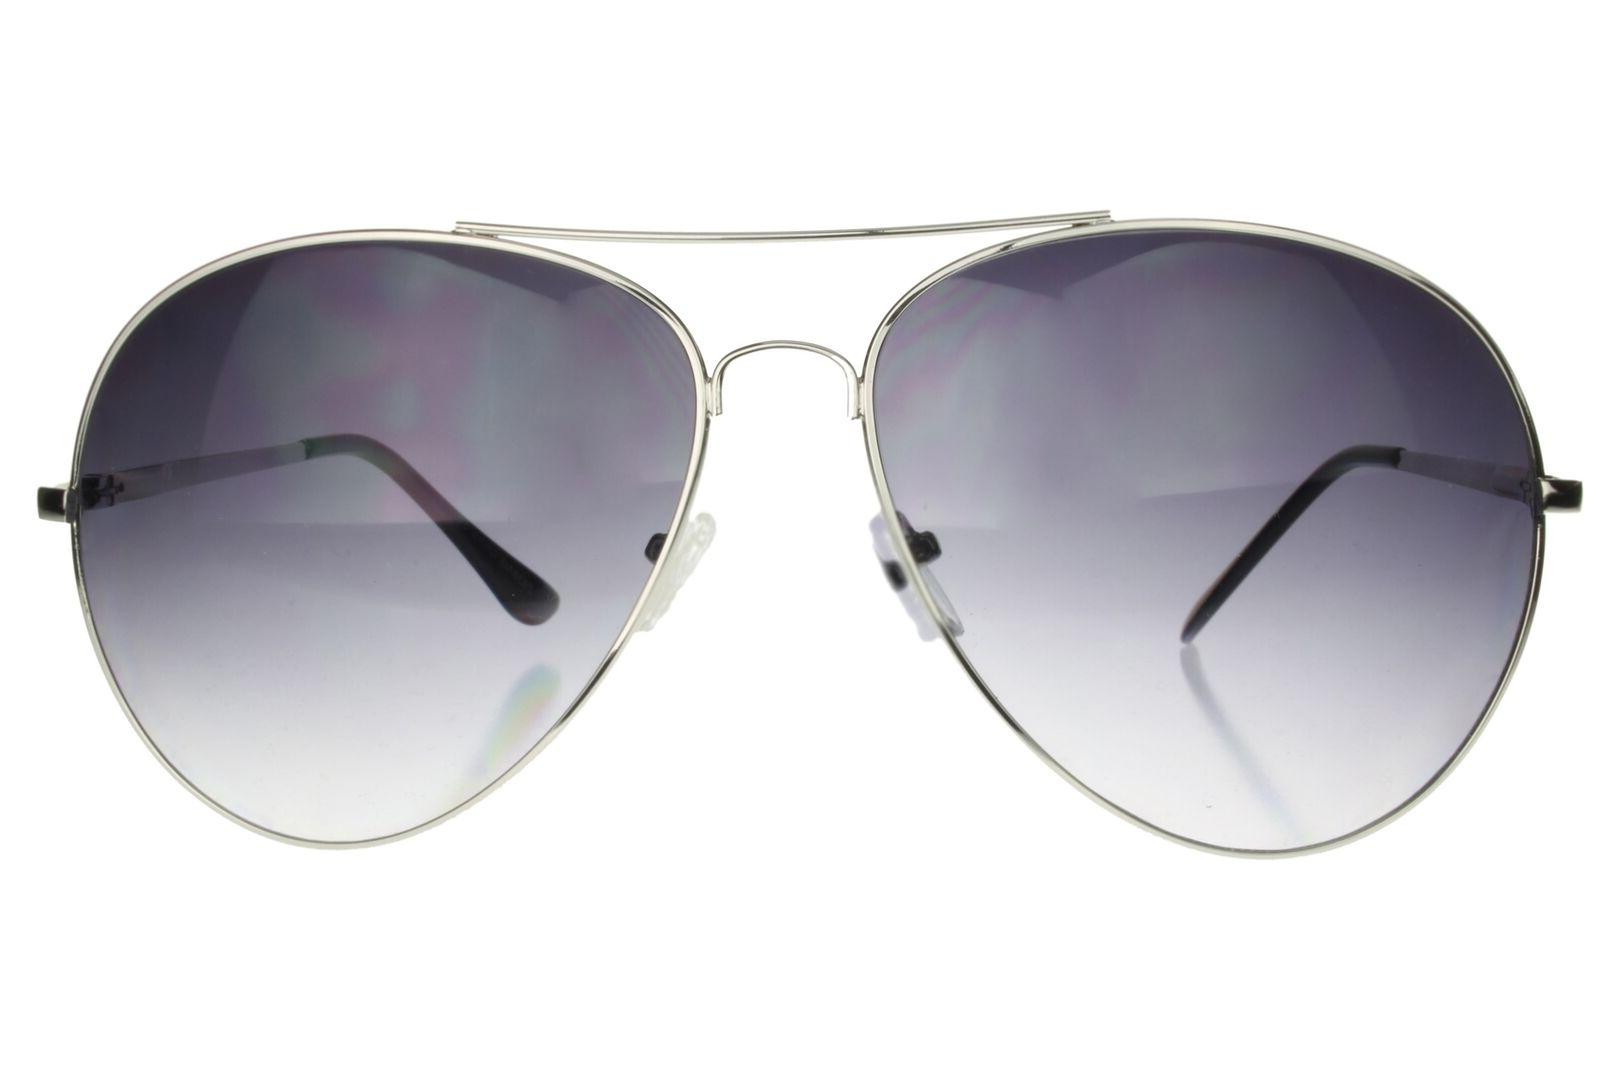 sunglasses extra wide frame oversized